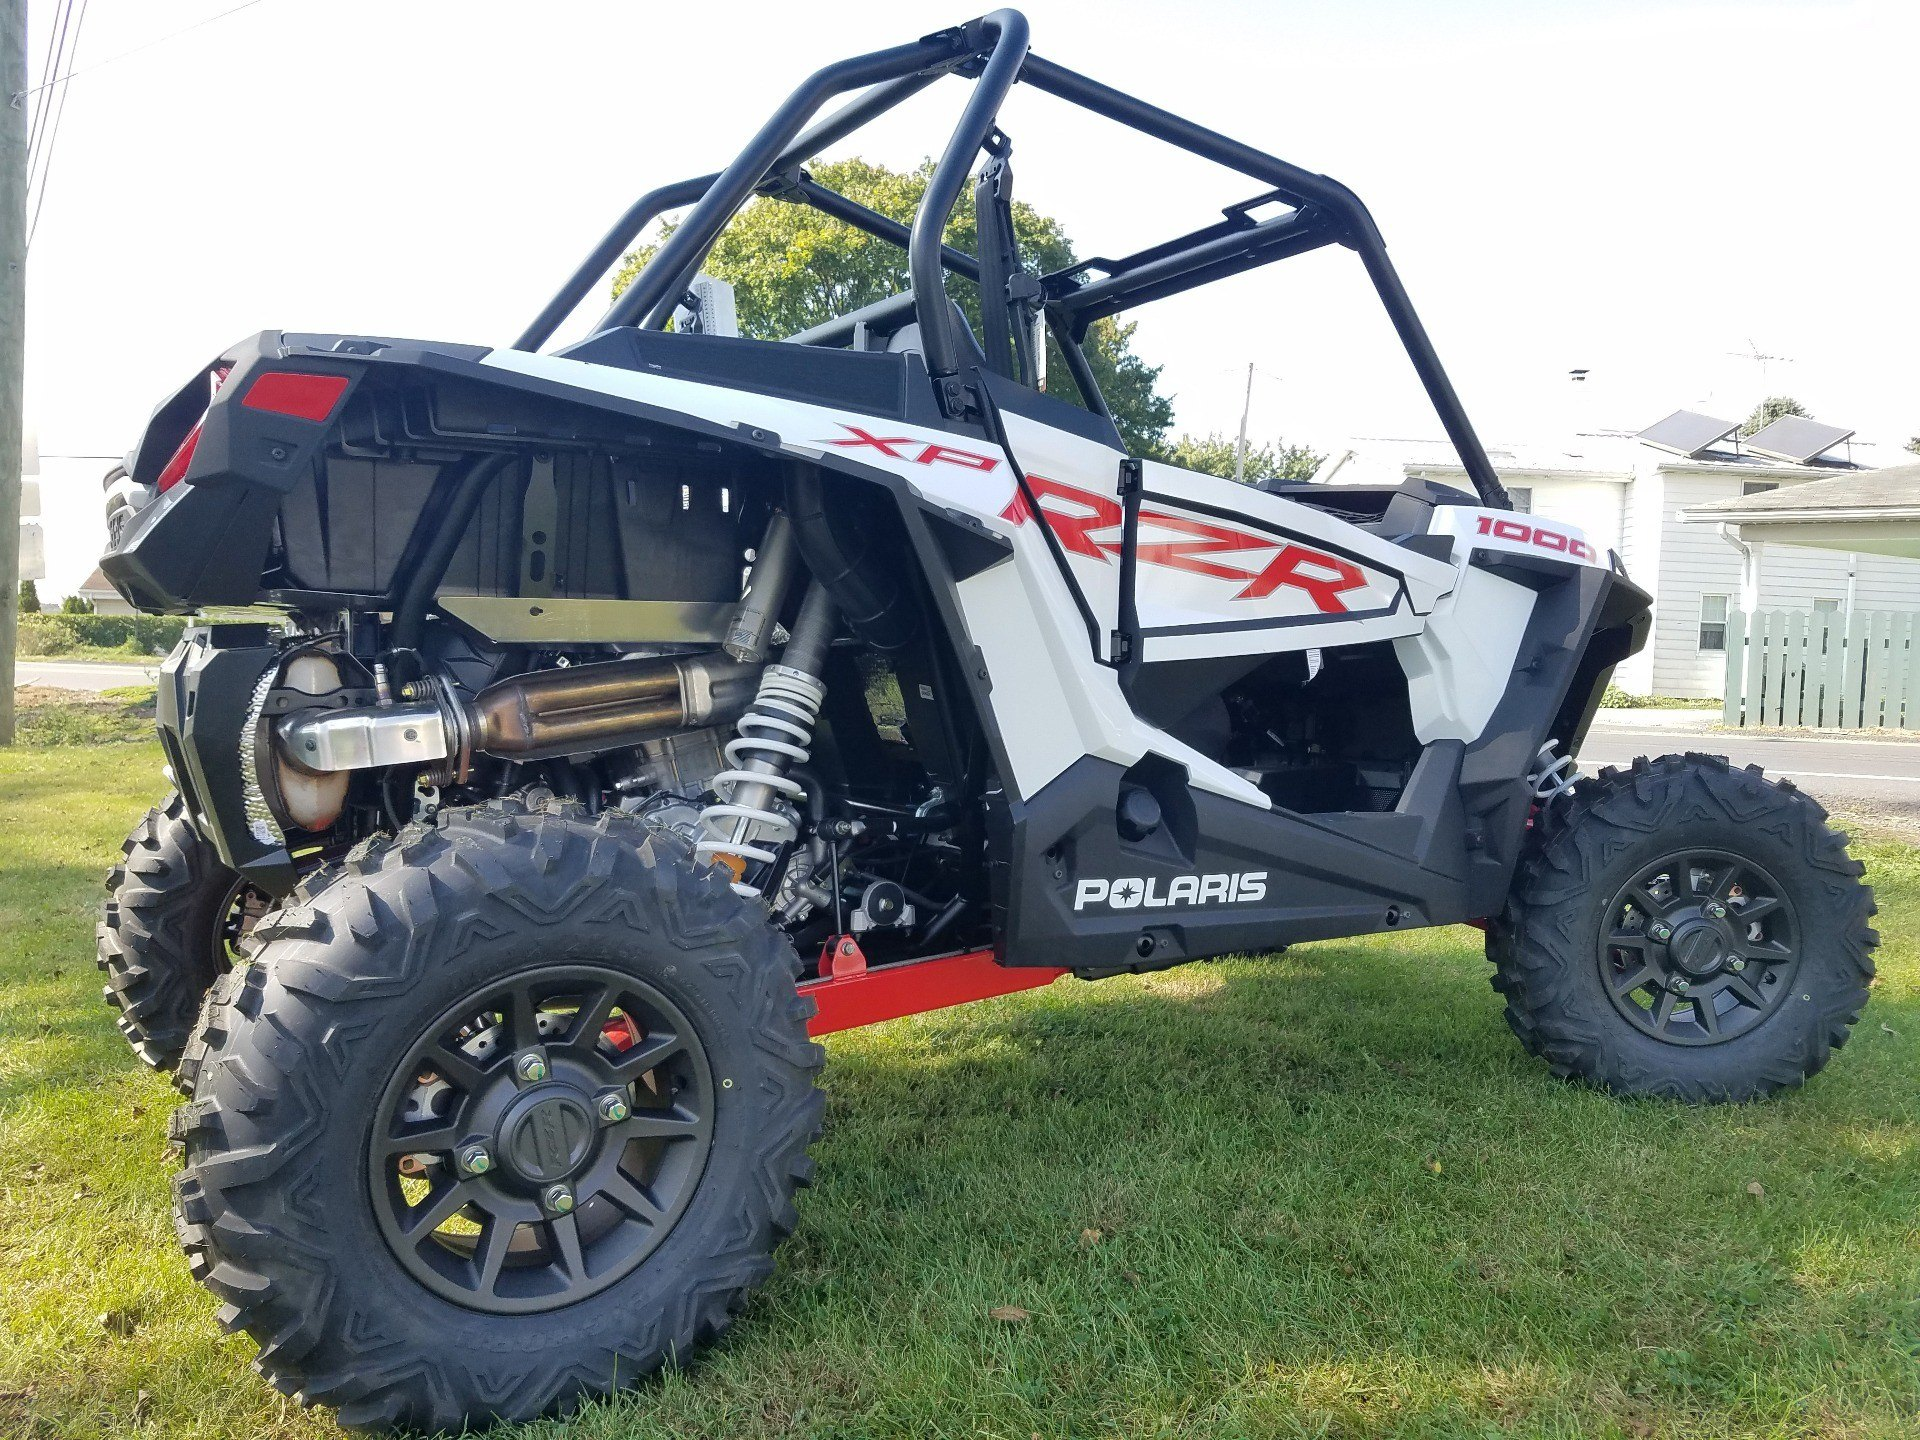 2020 Polaris RZR XP 1000 in Annville, Pennsylvania - Photo 5